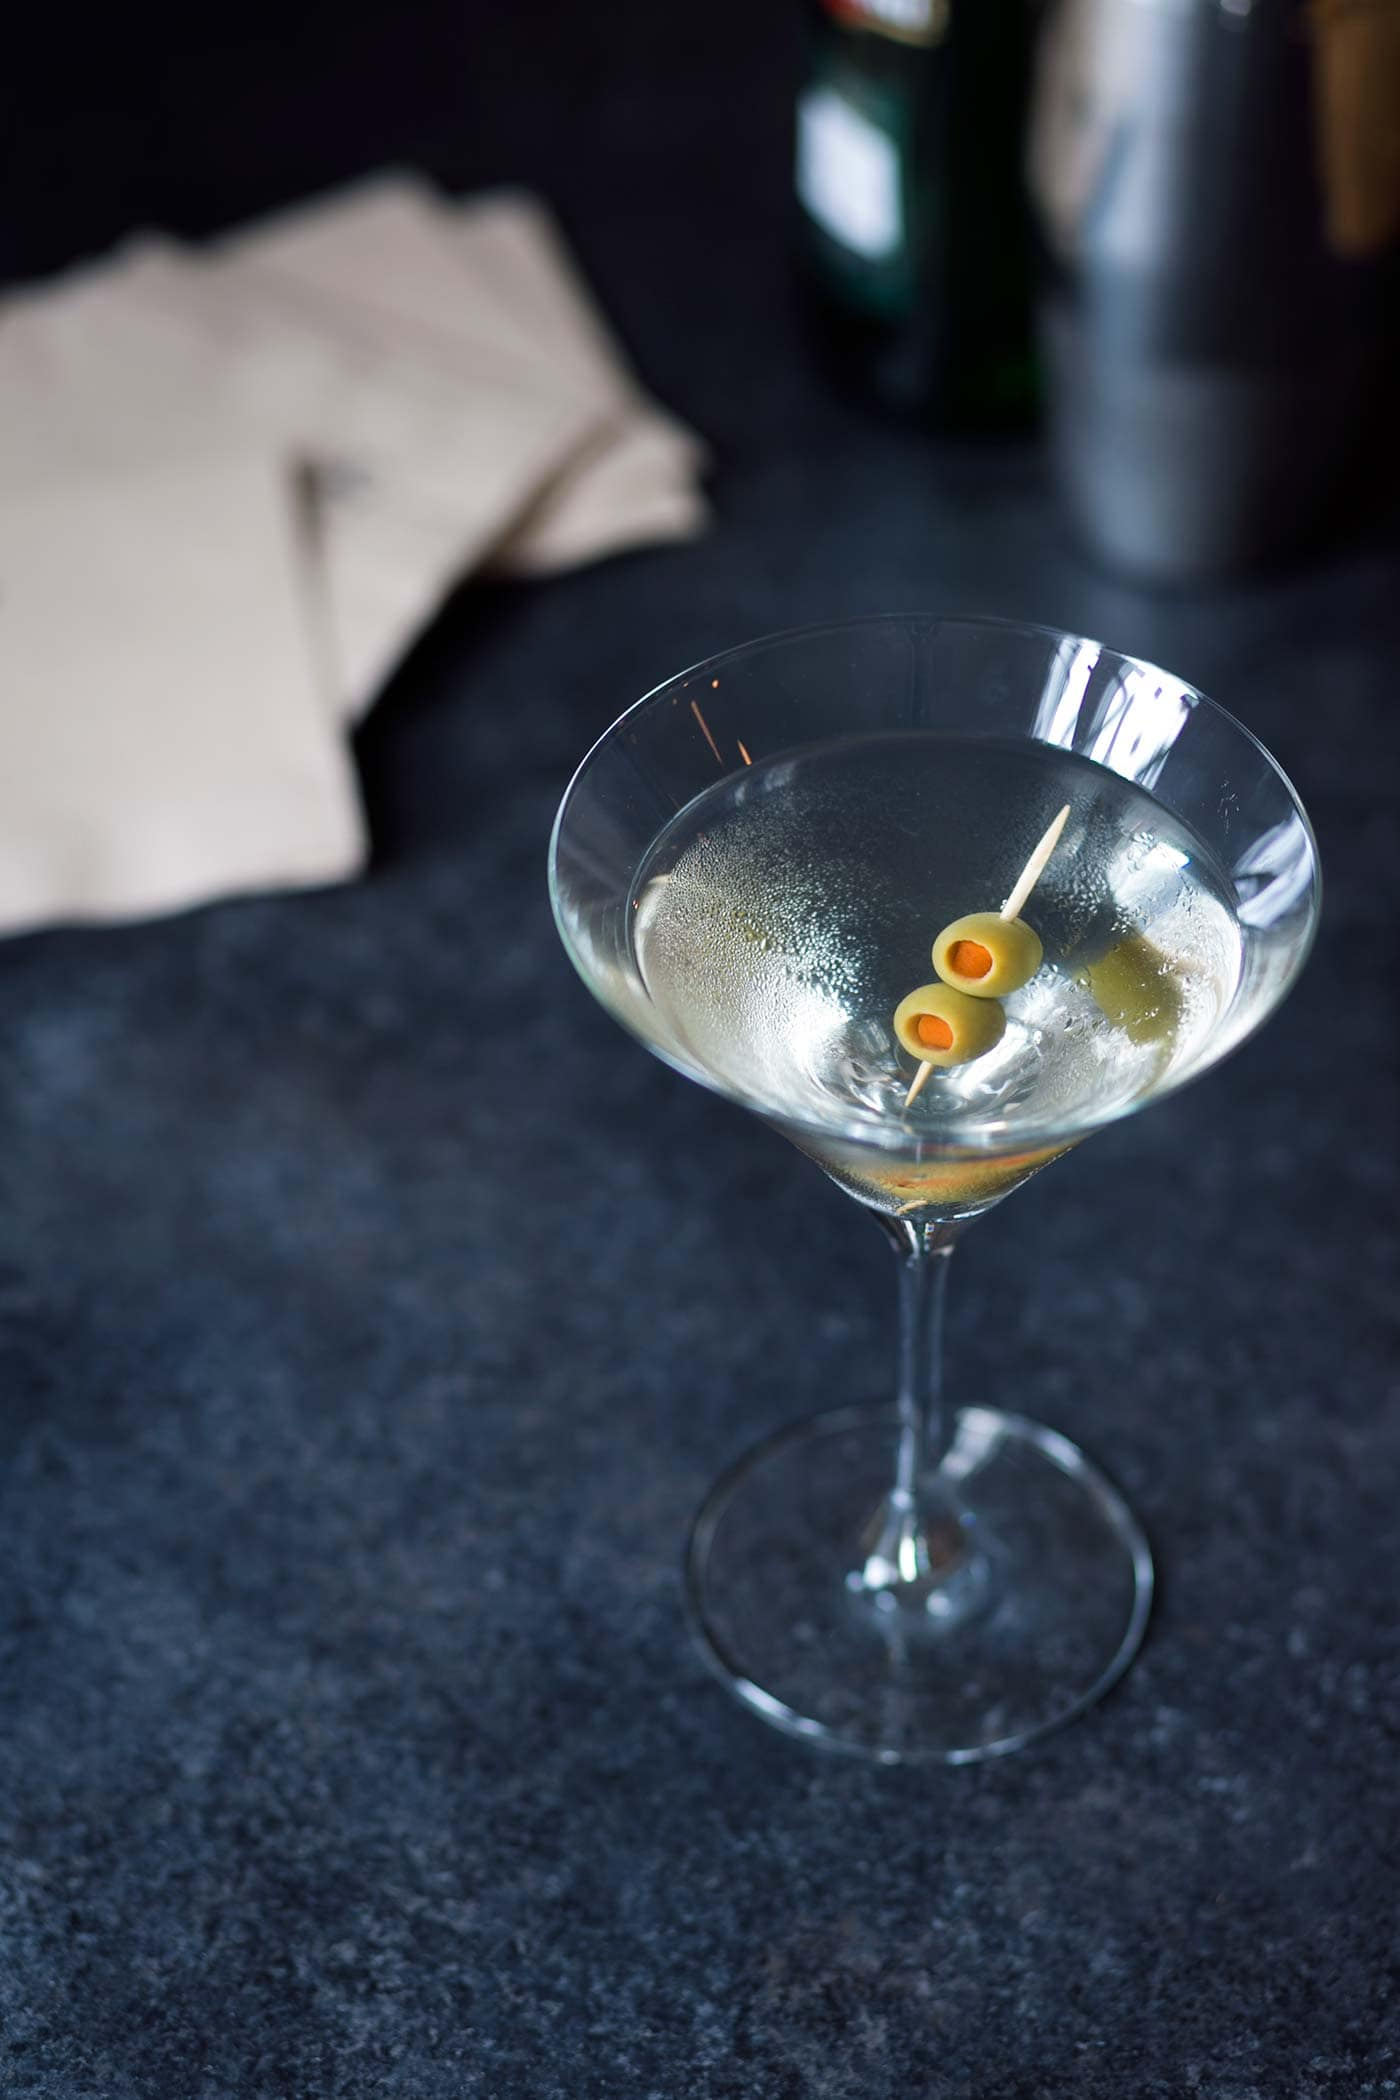 I like to keep ingredients for a few cocktails on hand when we have parties, and I can always quickly whip up a Classic or Dirty Martini for guests on demand. Learn how at SavorySimple.net